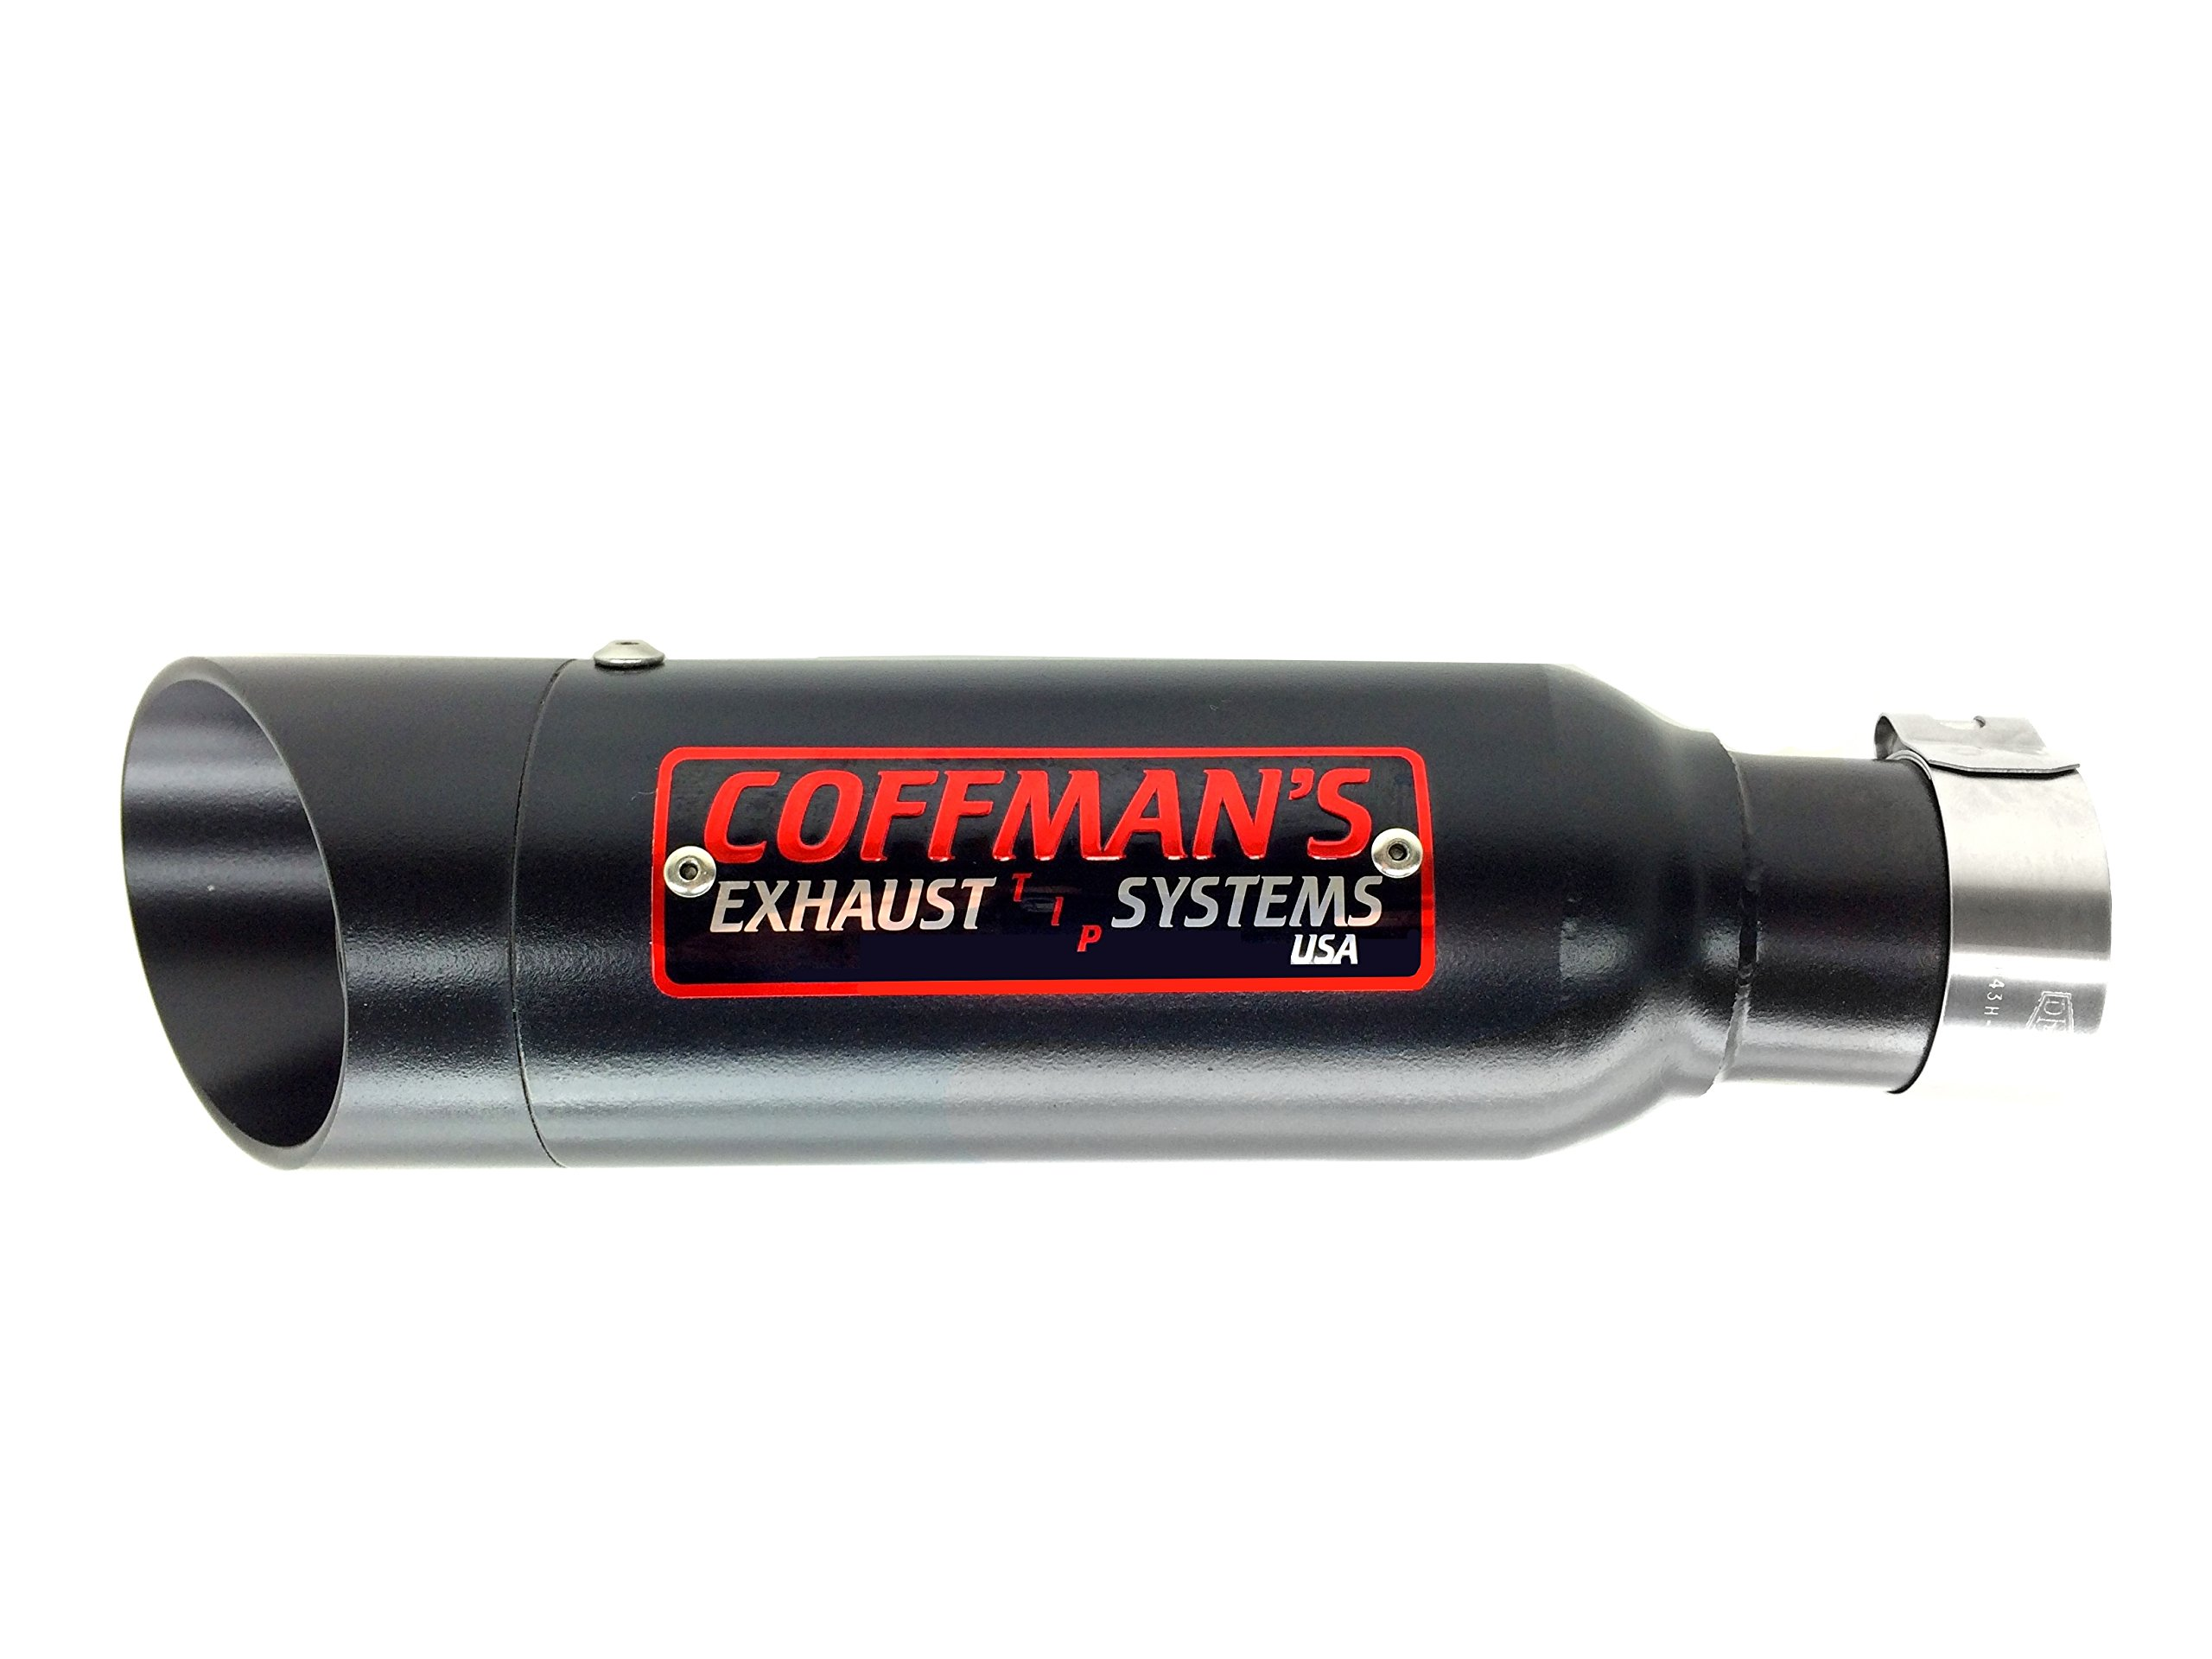 Coffman's Shorty Exhaust for Honda CMX 500/300 Rebel 2017 Sportbike with Black Tip by Coffman's Exhaust